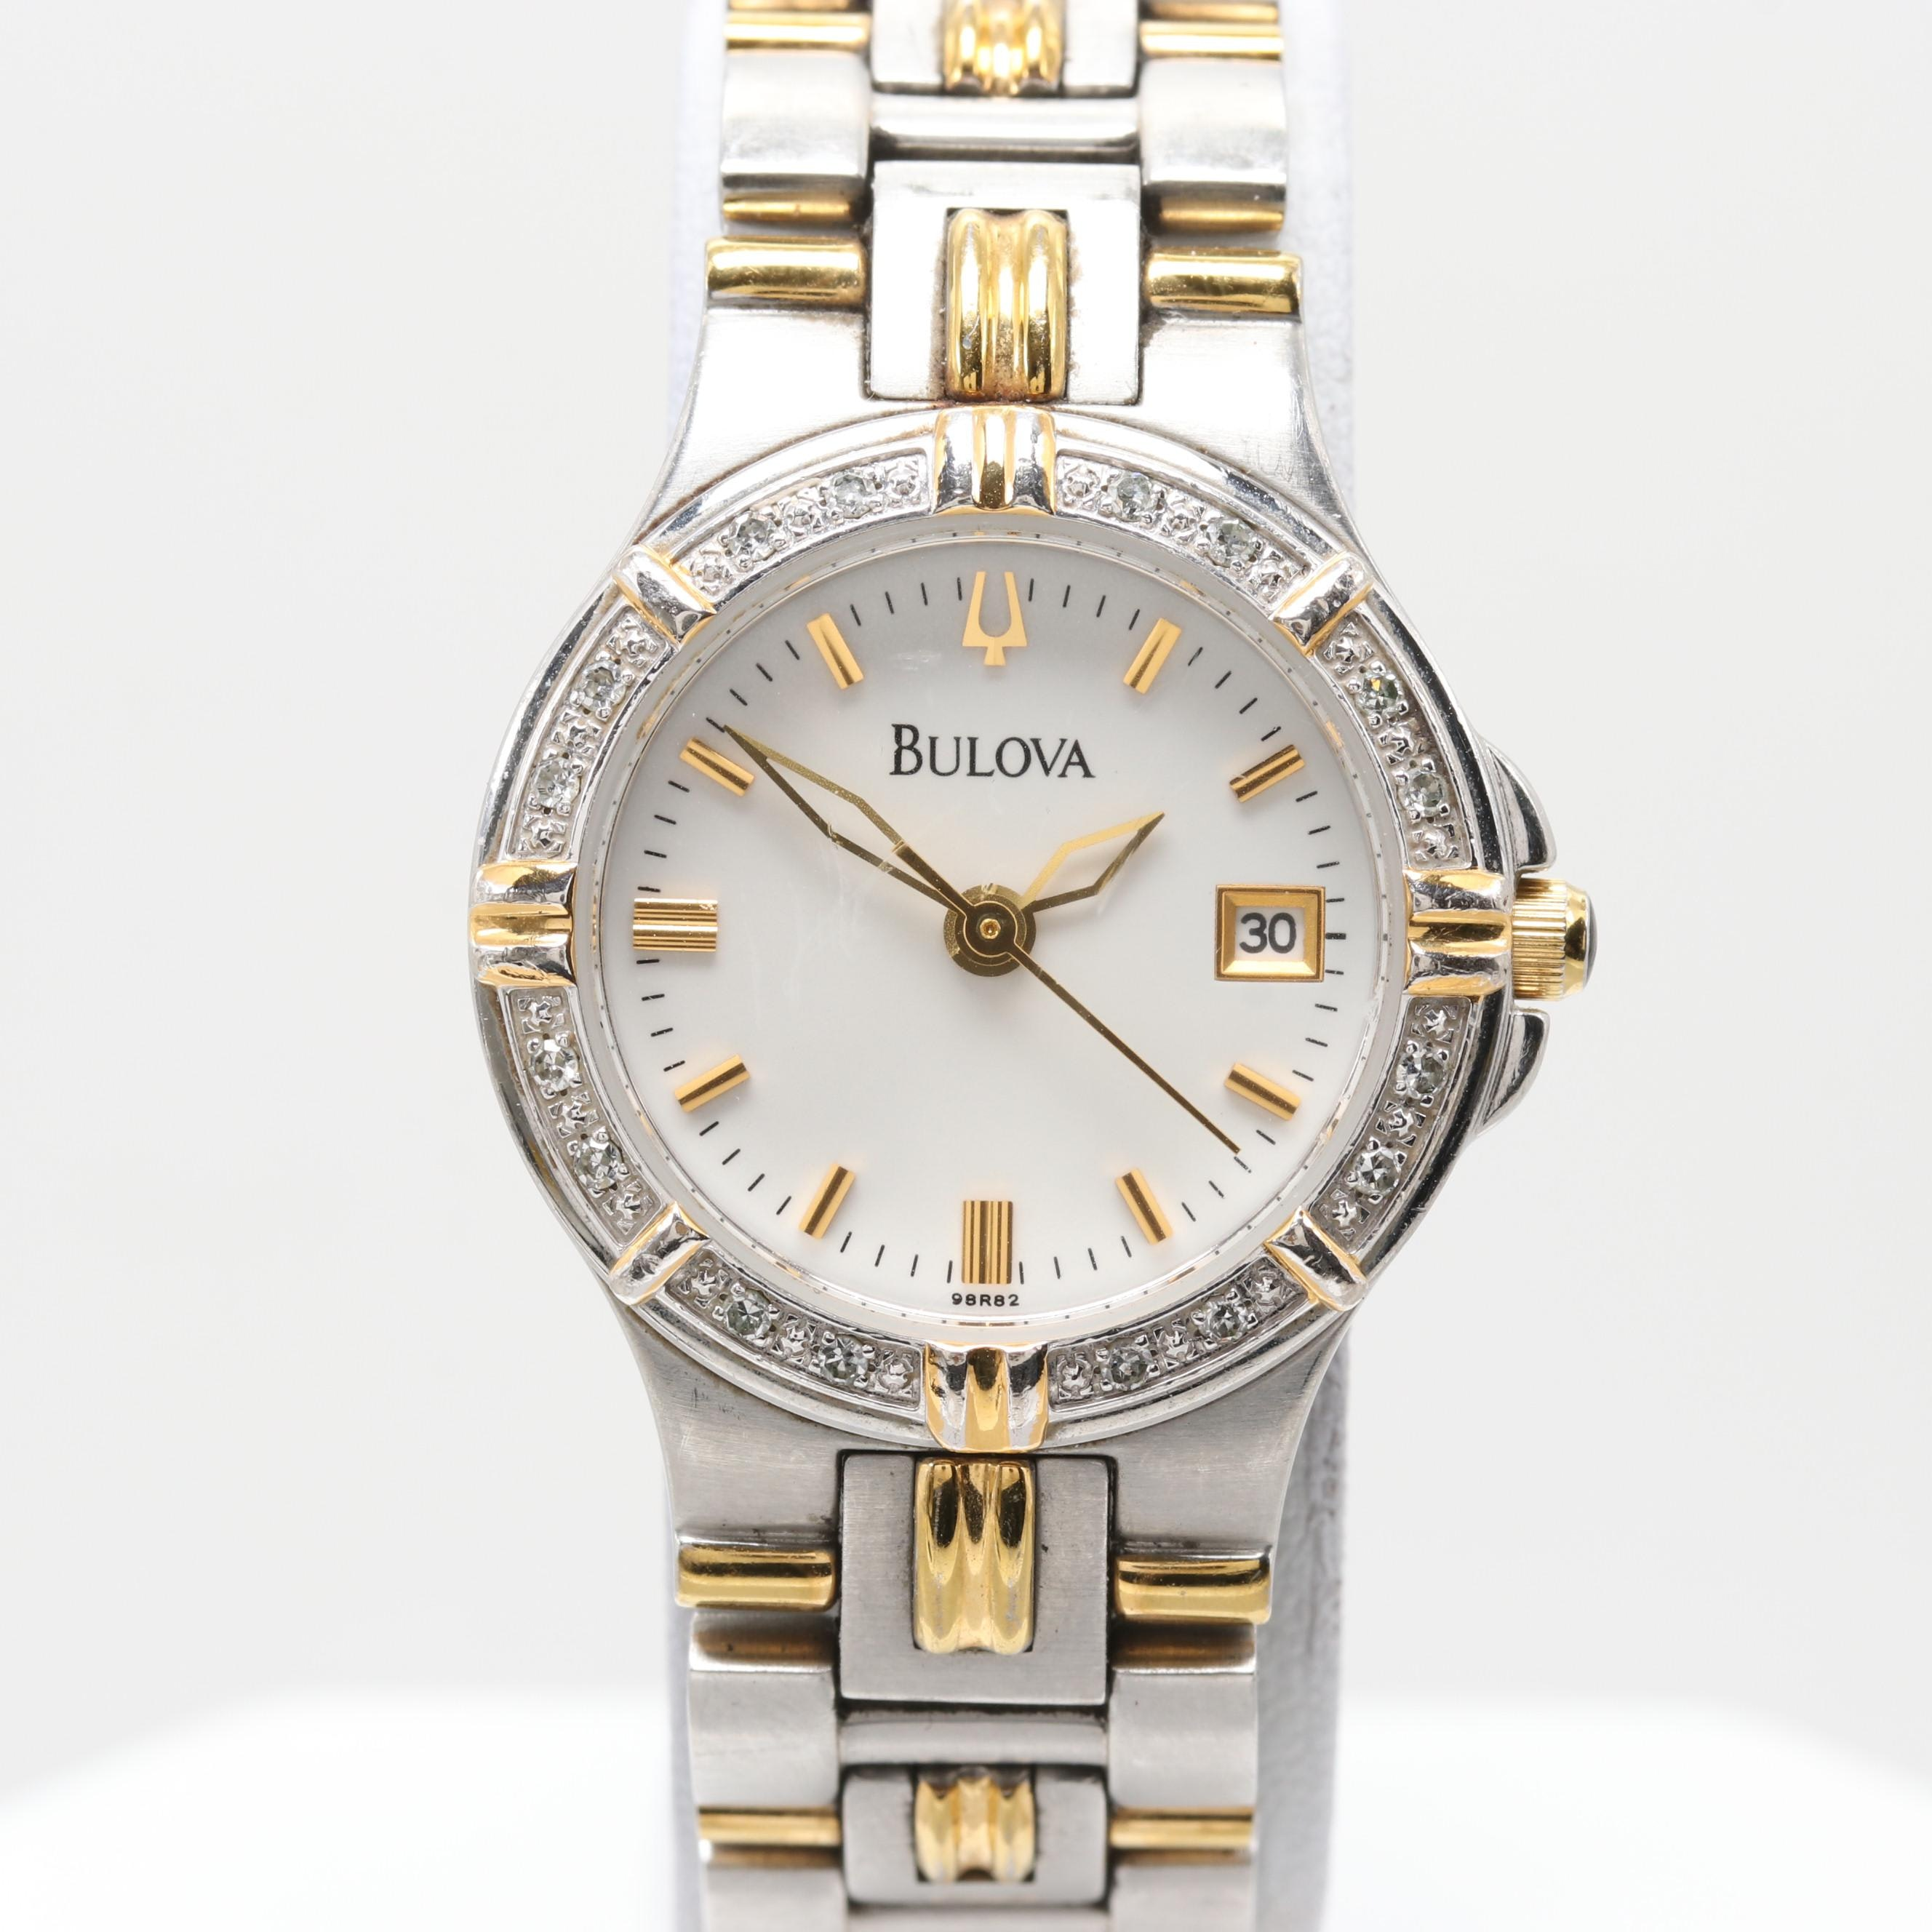 Bulova Two-Tone Wristwatch With Diamond Bezel